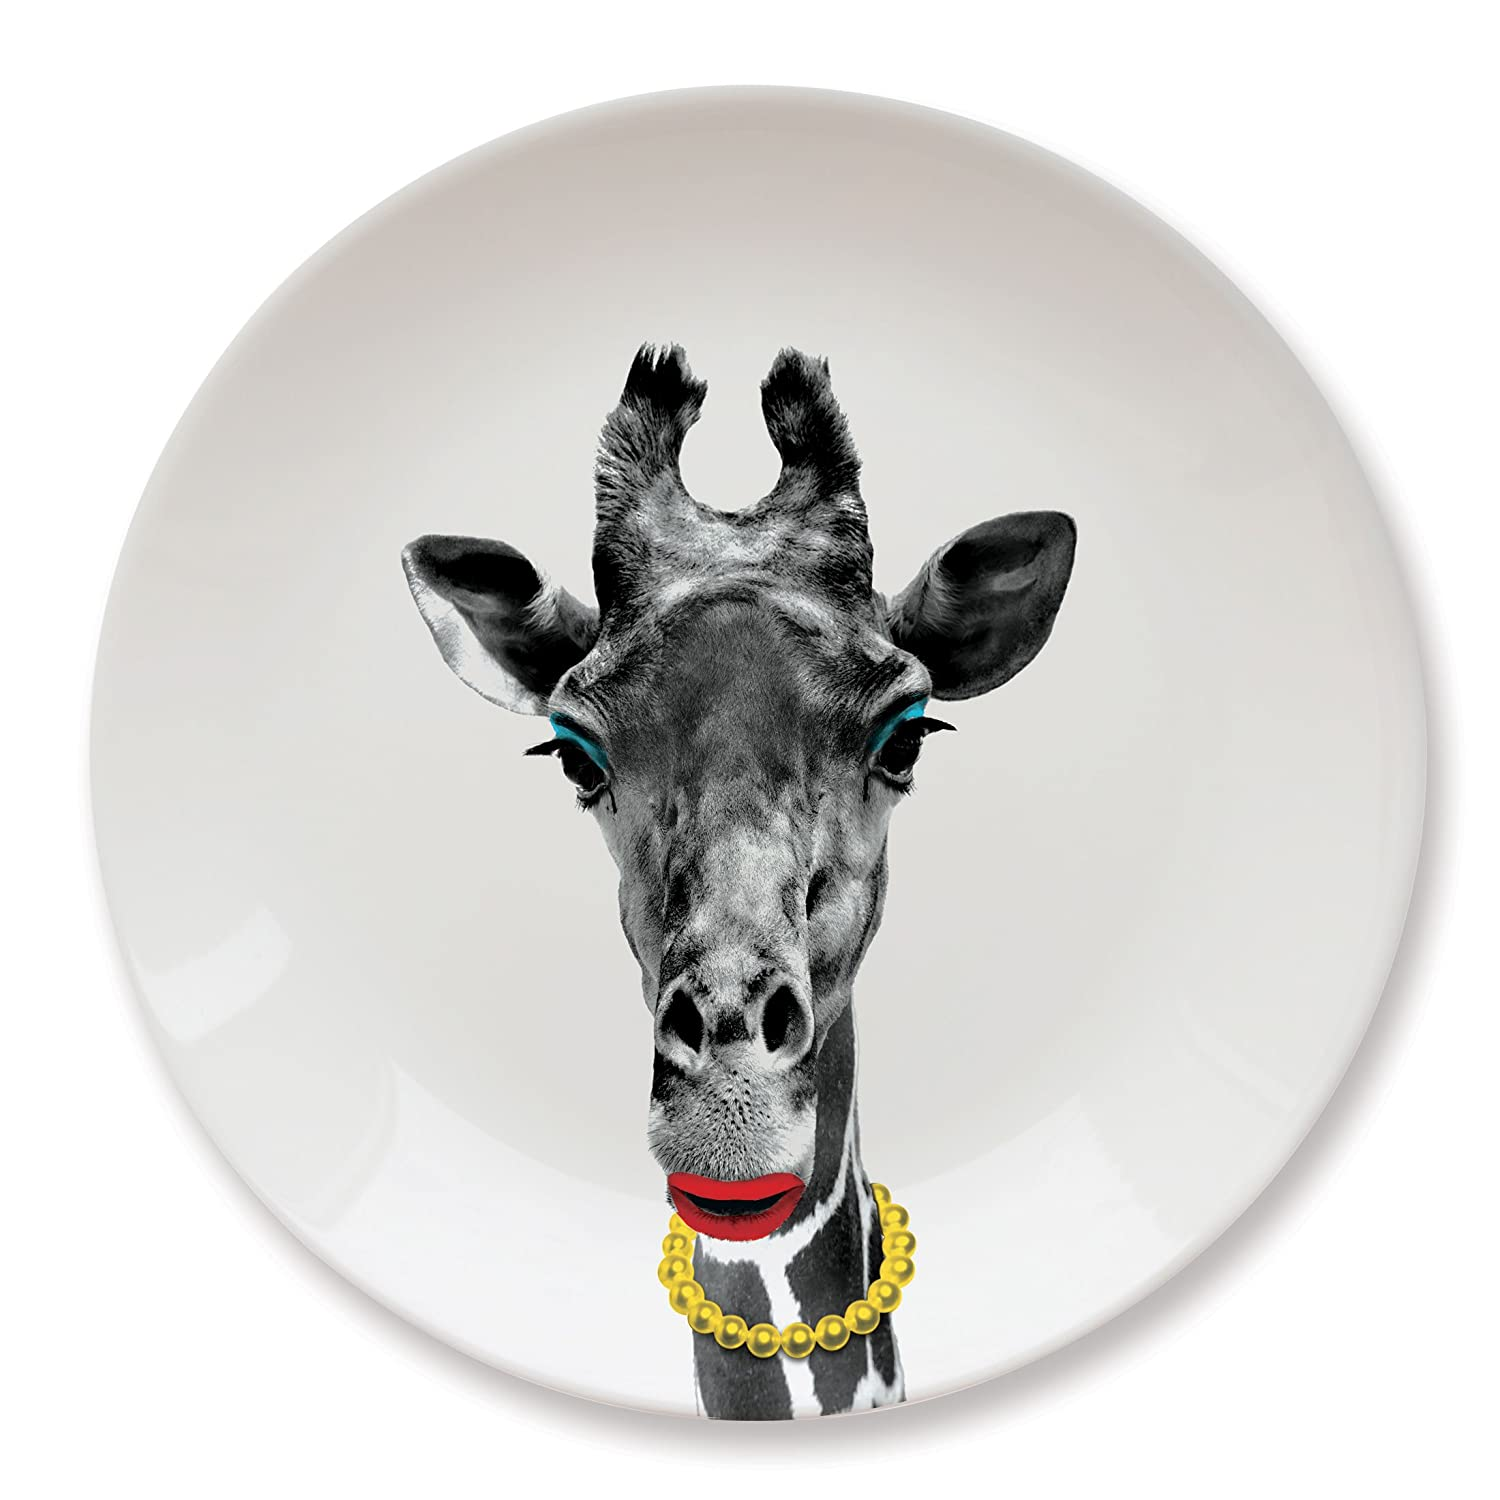 MUSTARD Ceramic Dinner Plate I Dishwasher safe I Dinnerware - Wild Dining Giraffe